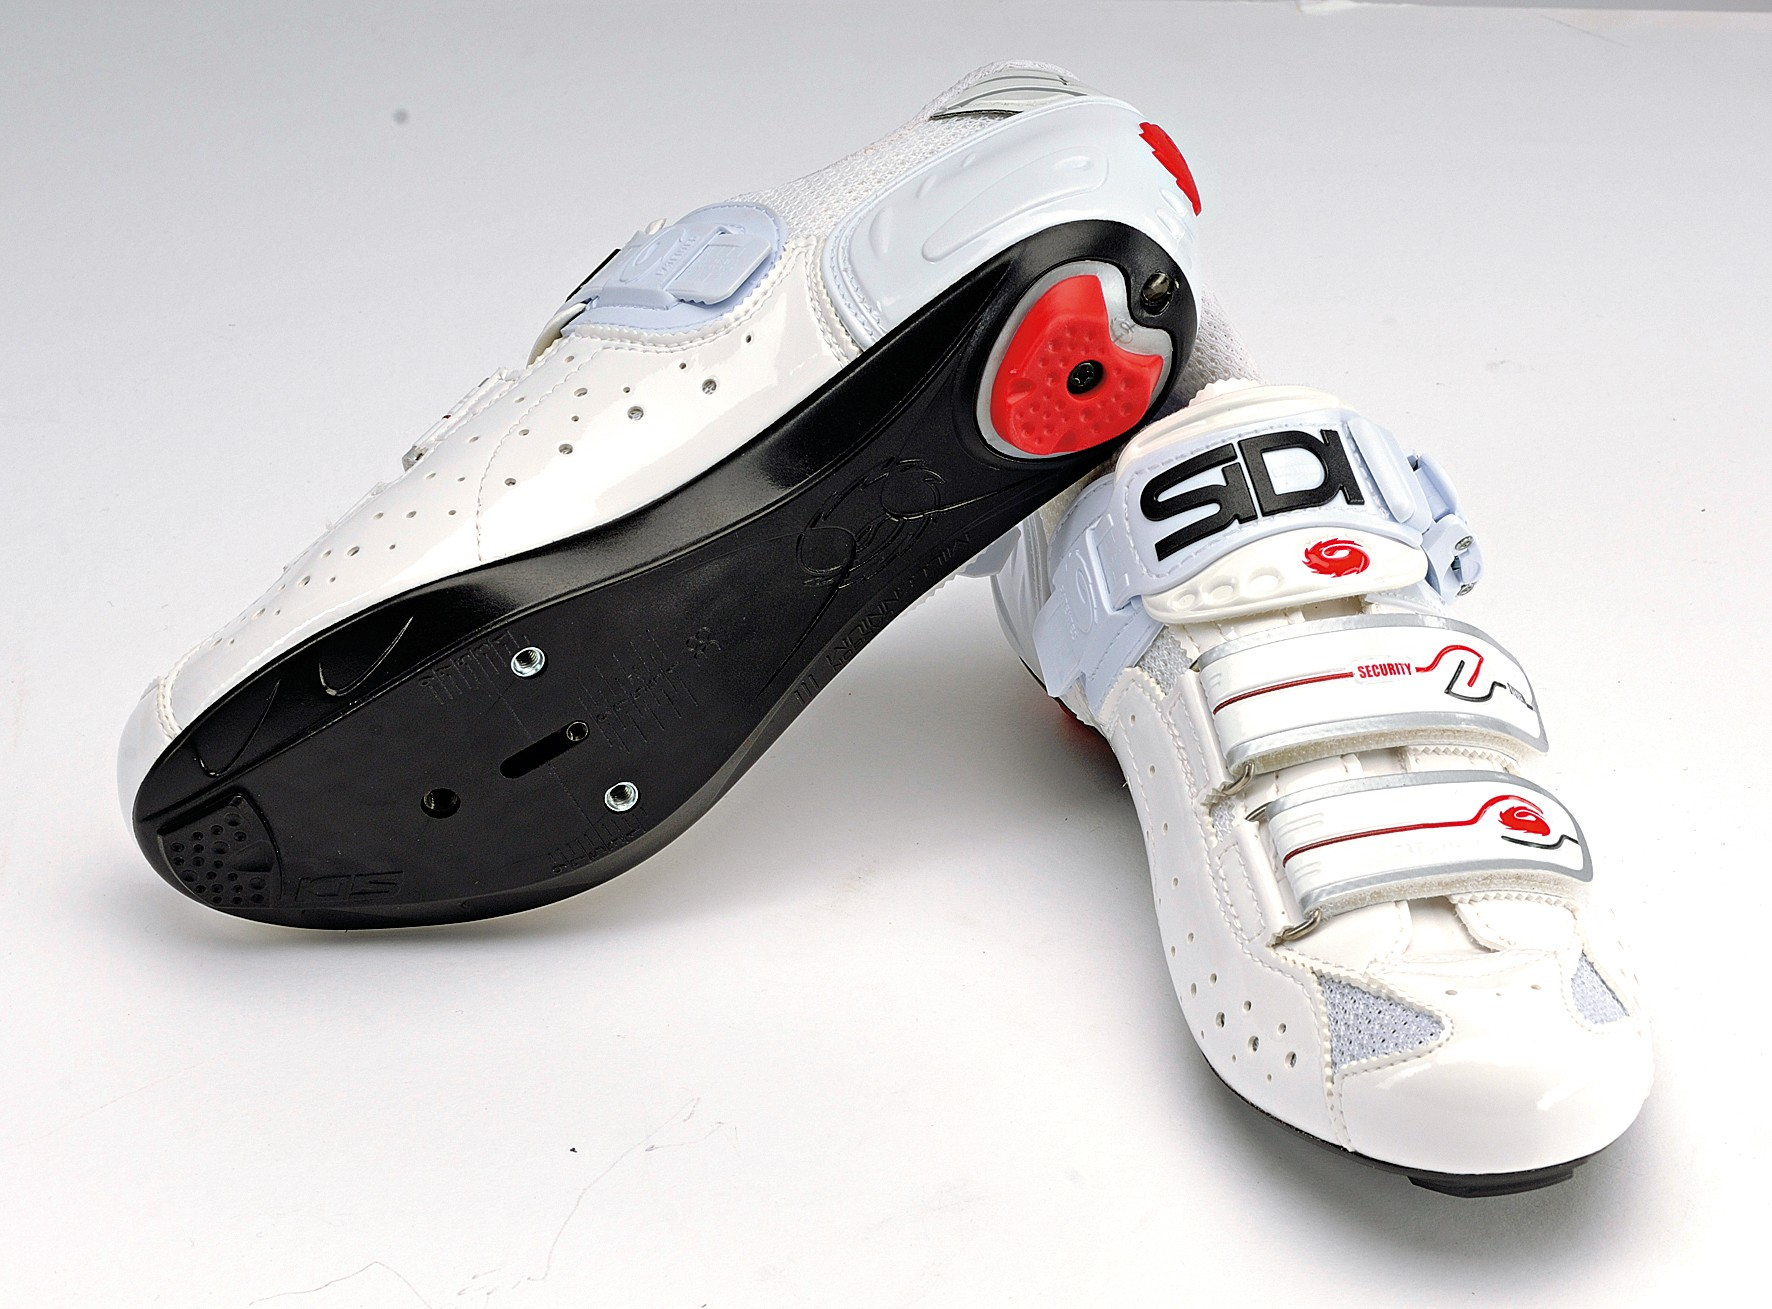 Sidi Genius 5 Pro Vernice Road shoes